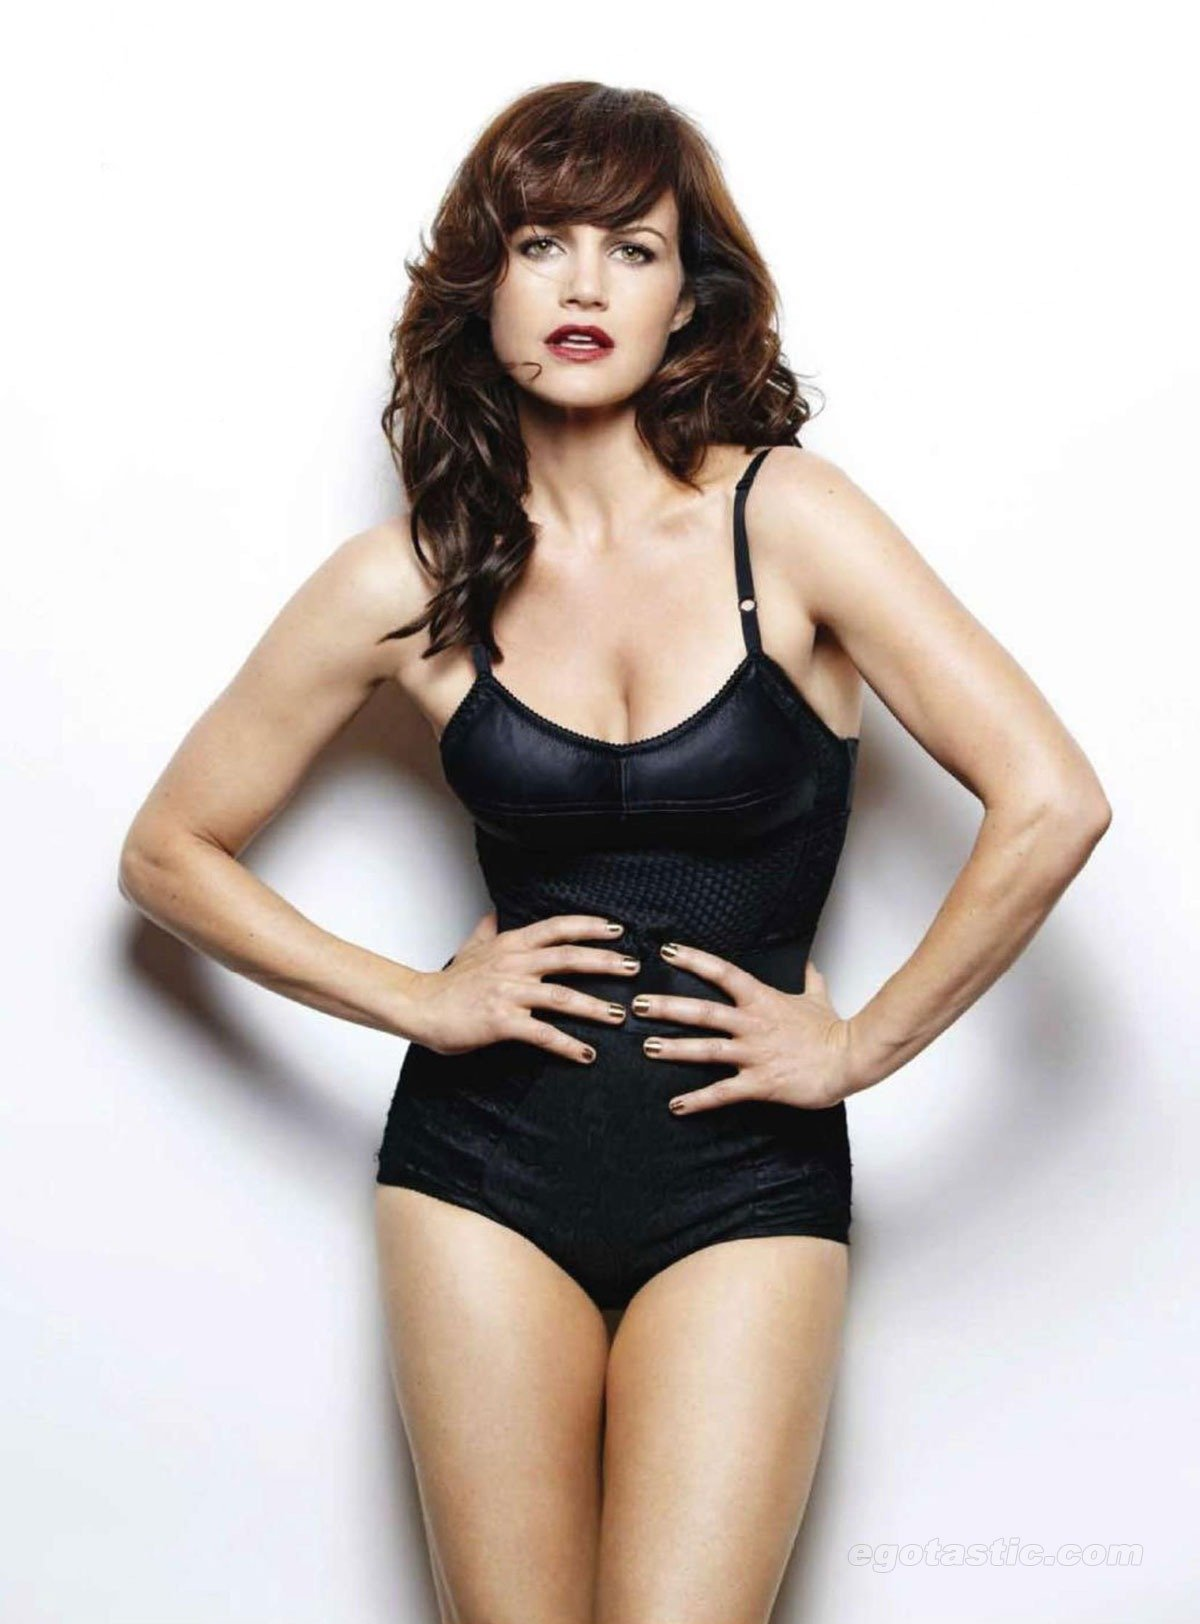 Carla Gugino looks steaming hot when she put on the sexy black lingerie. Her hot pics in bikinis are something that her fans are keenly interested in.